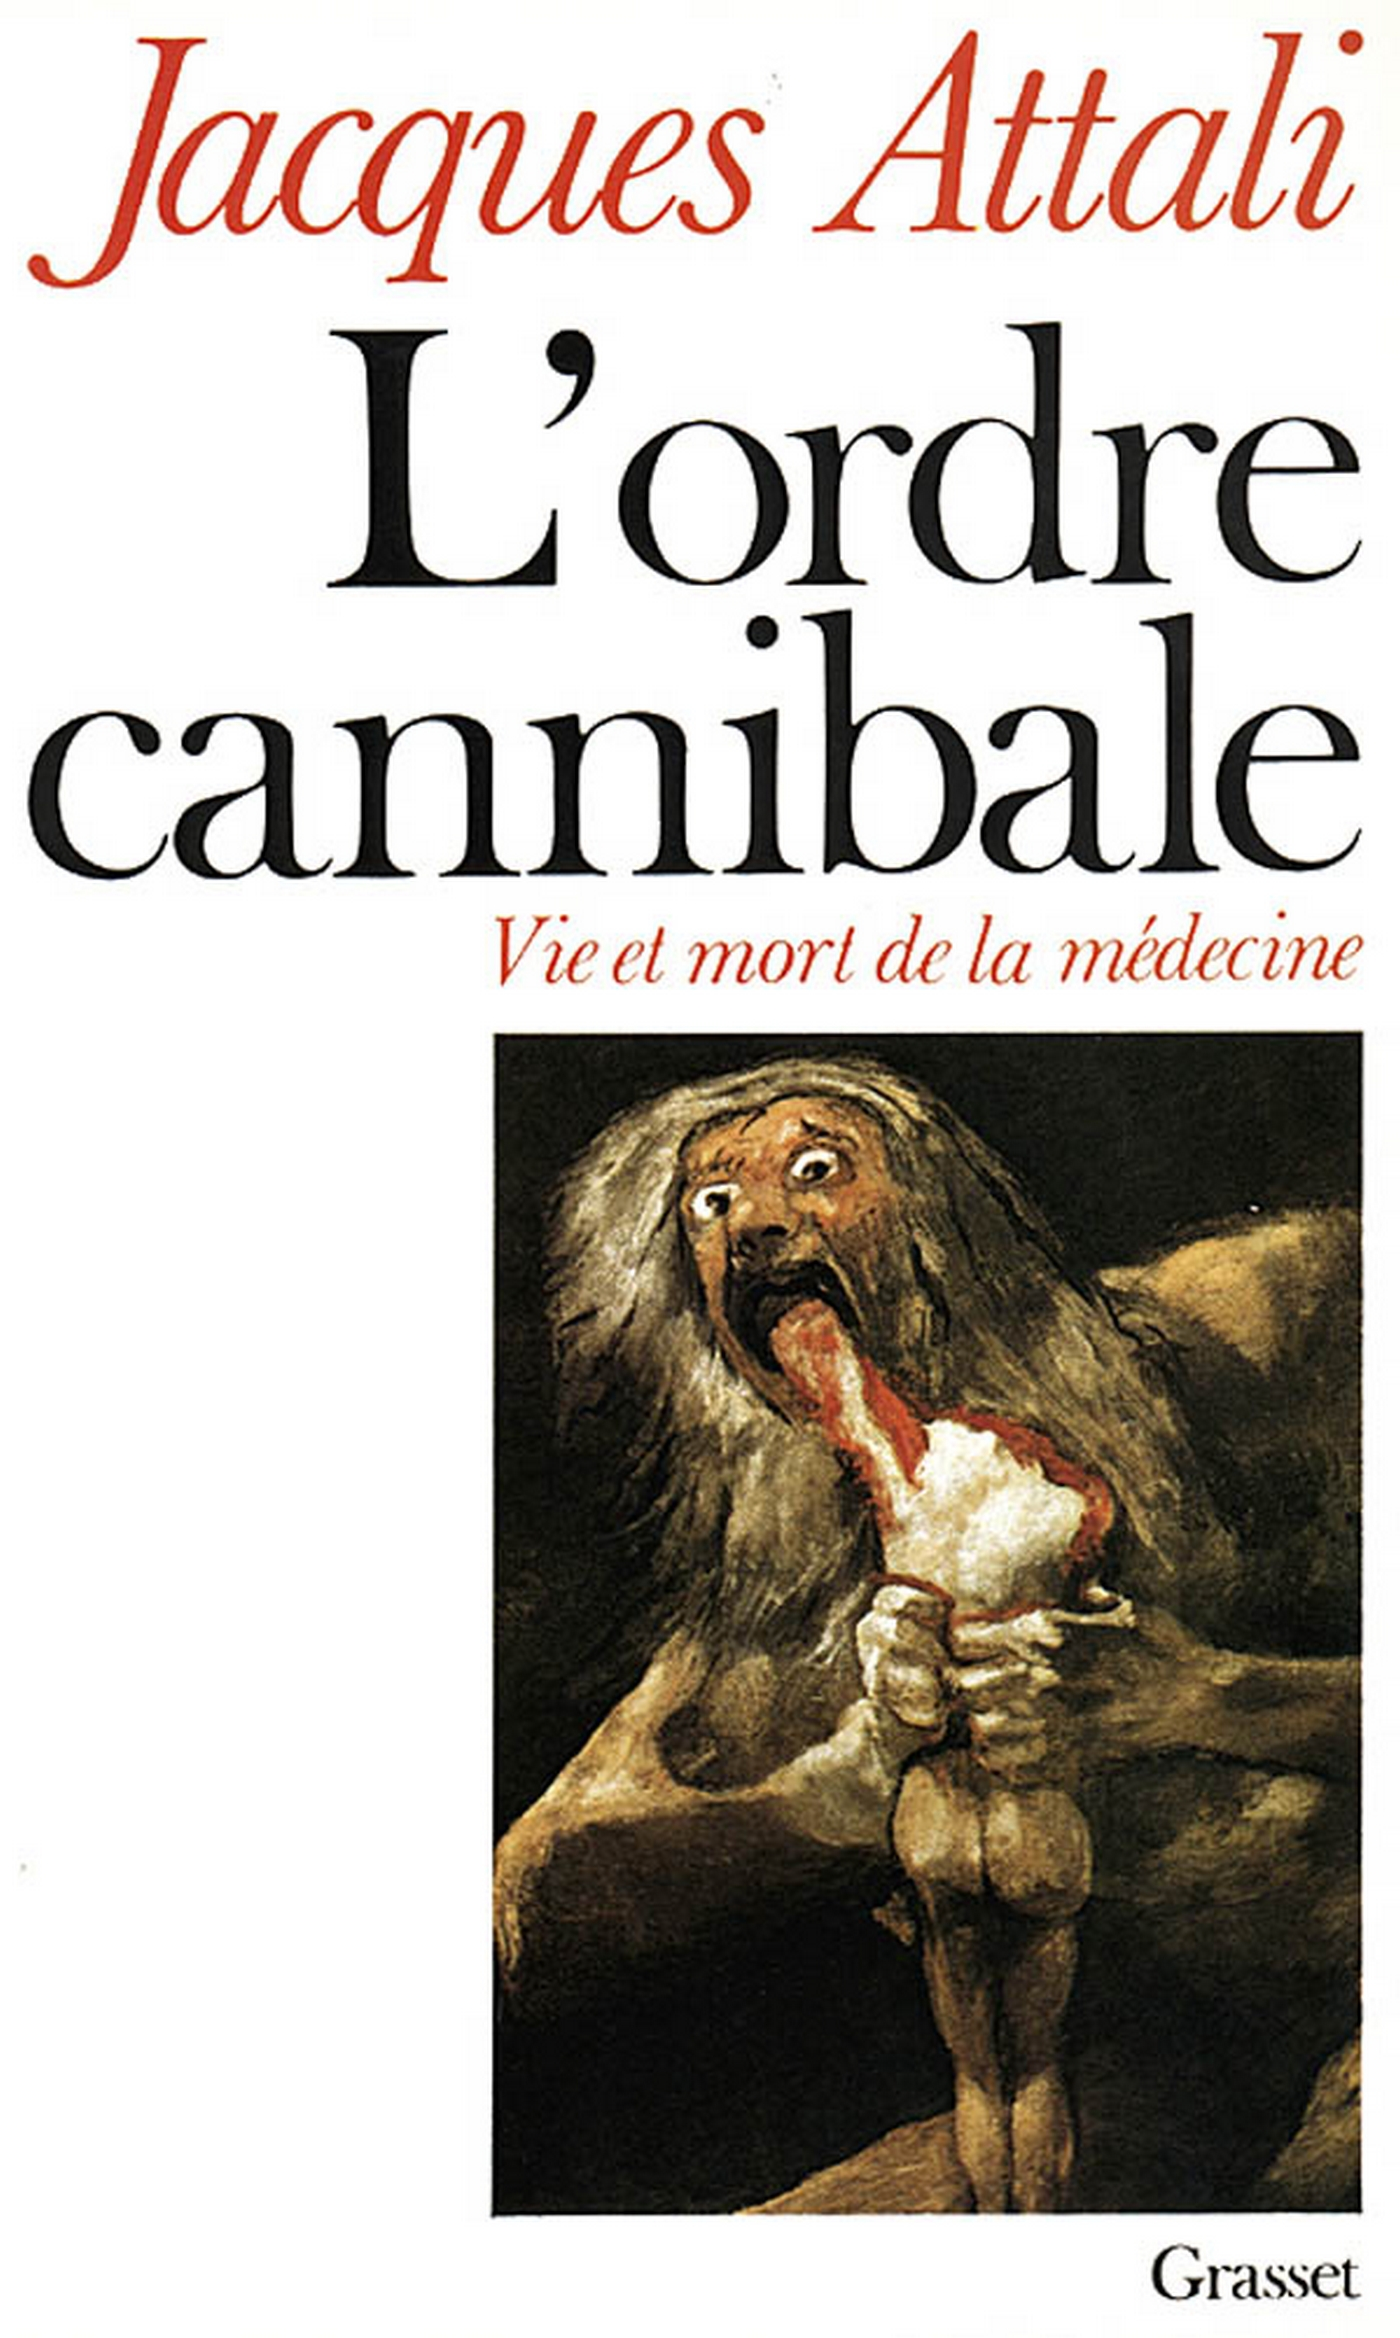 L'ordre cannibale